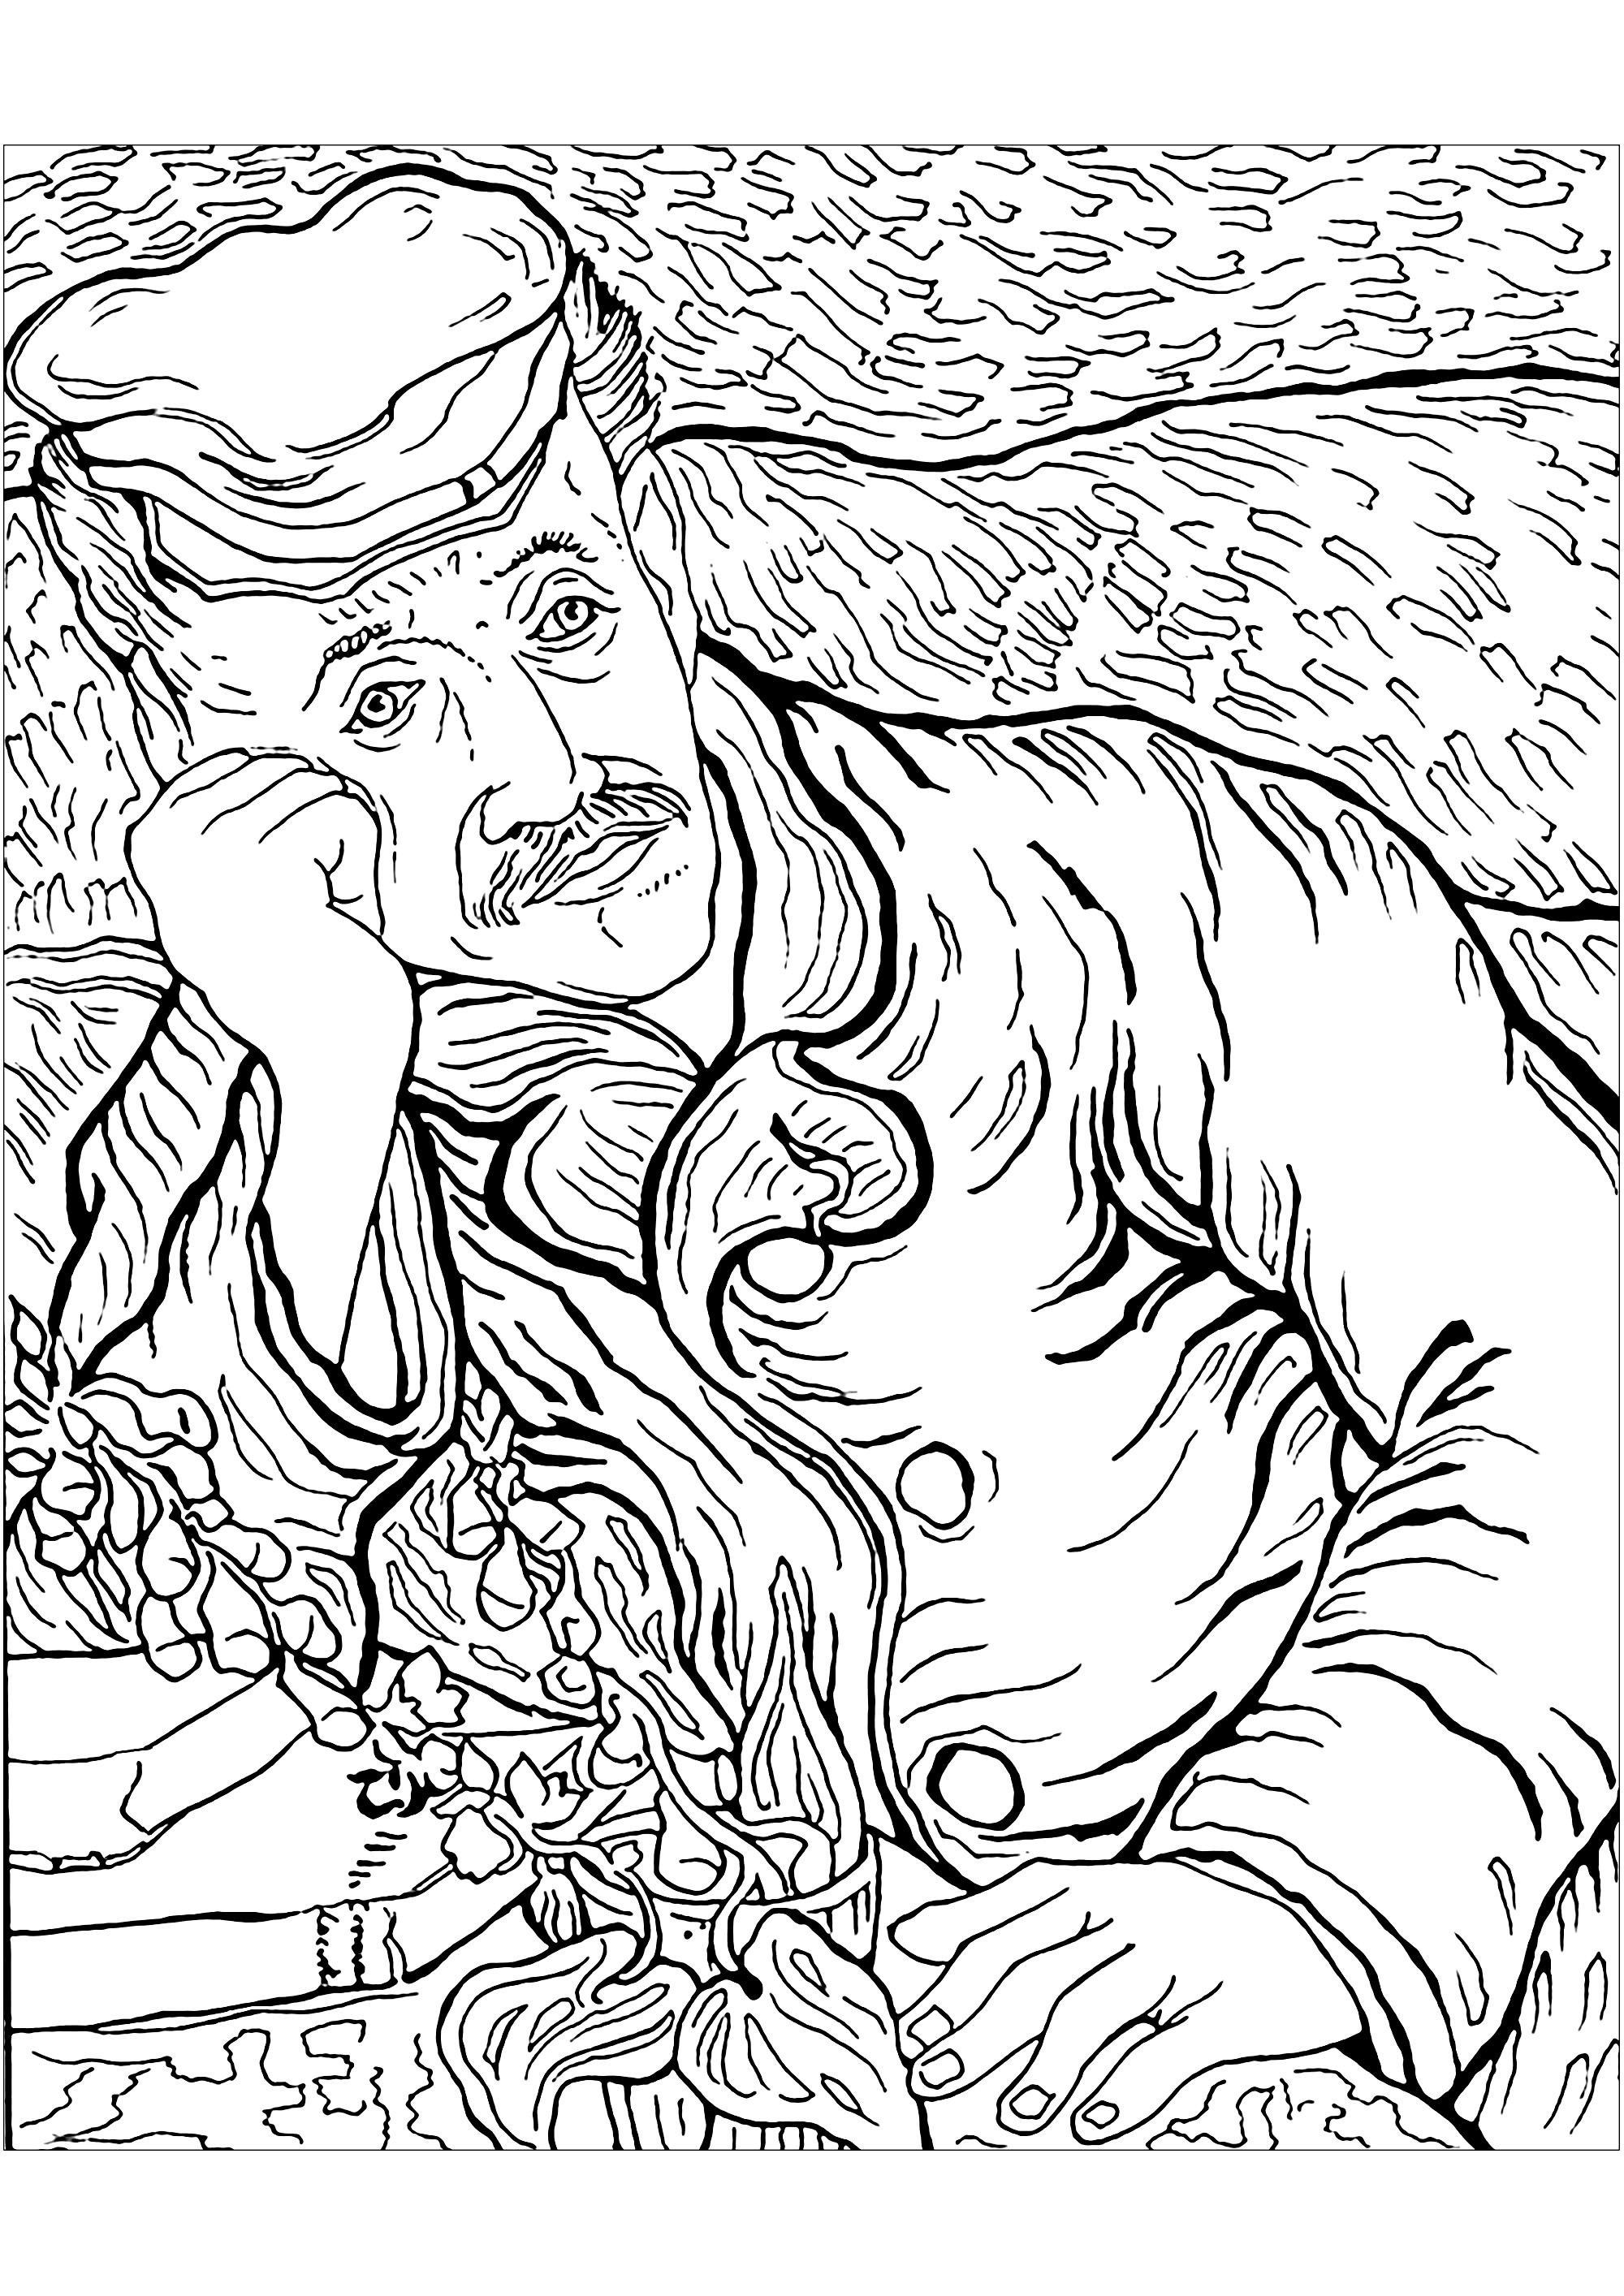 Vincent Van Gogh To Print For Free Vincent Van Gogh Kids Coloring